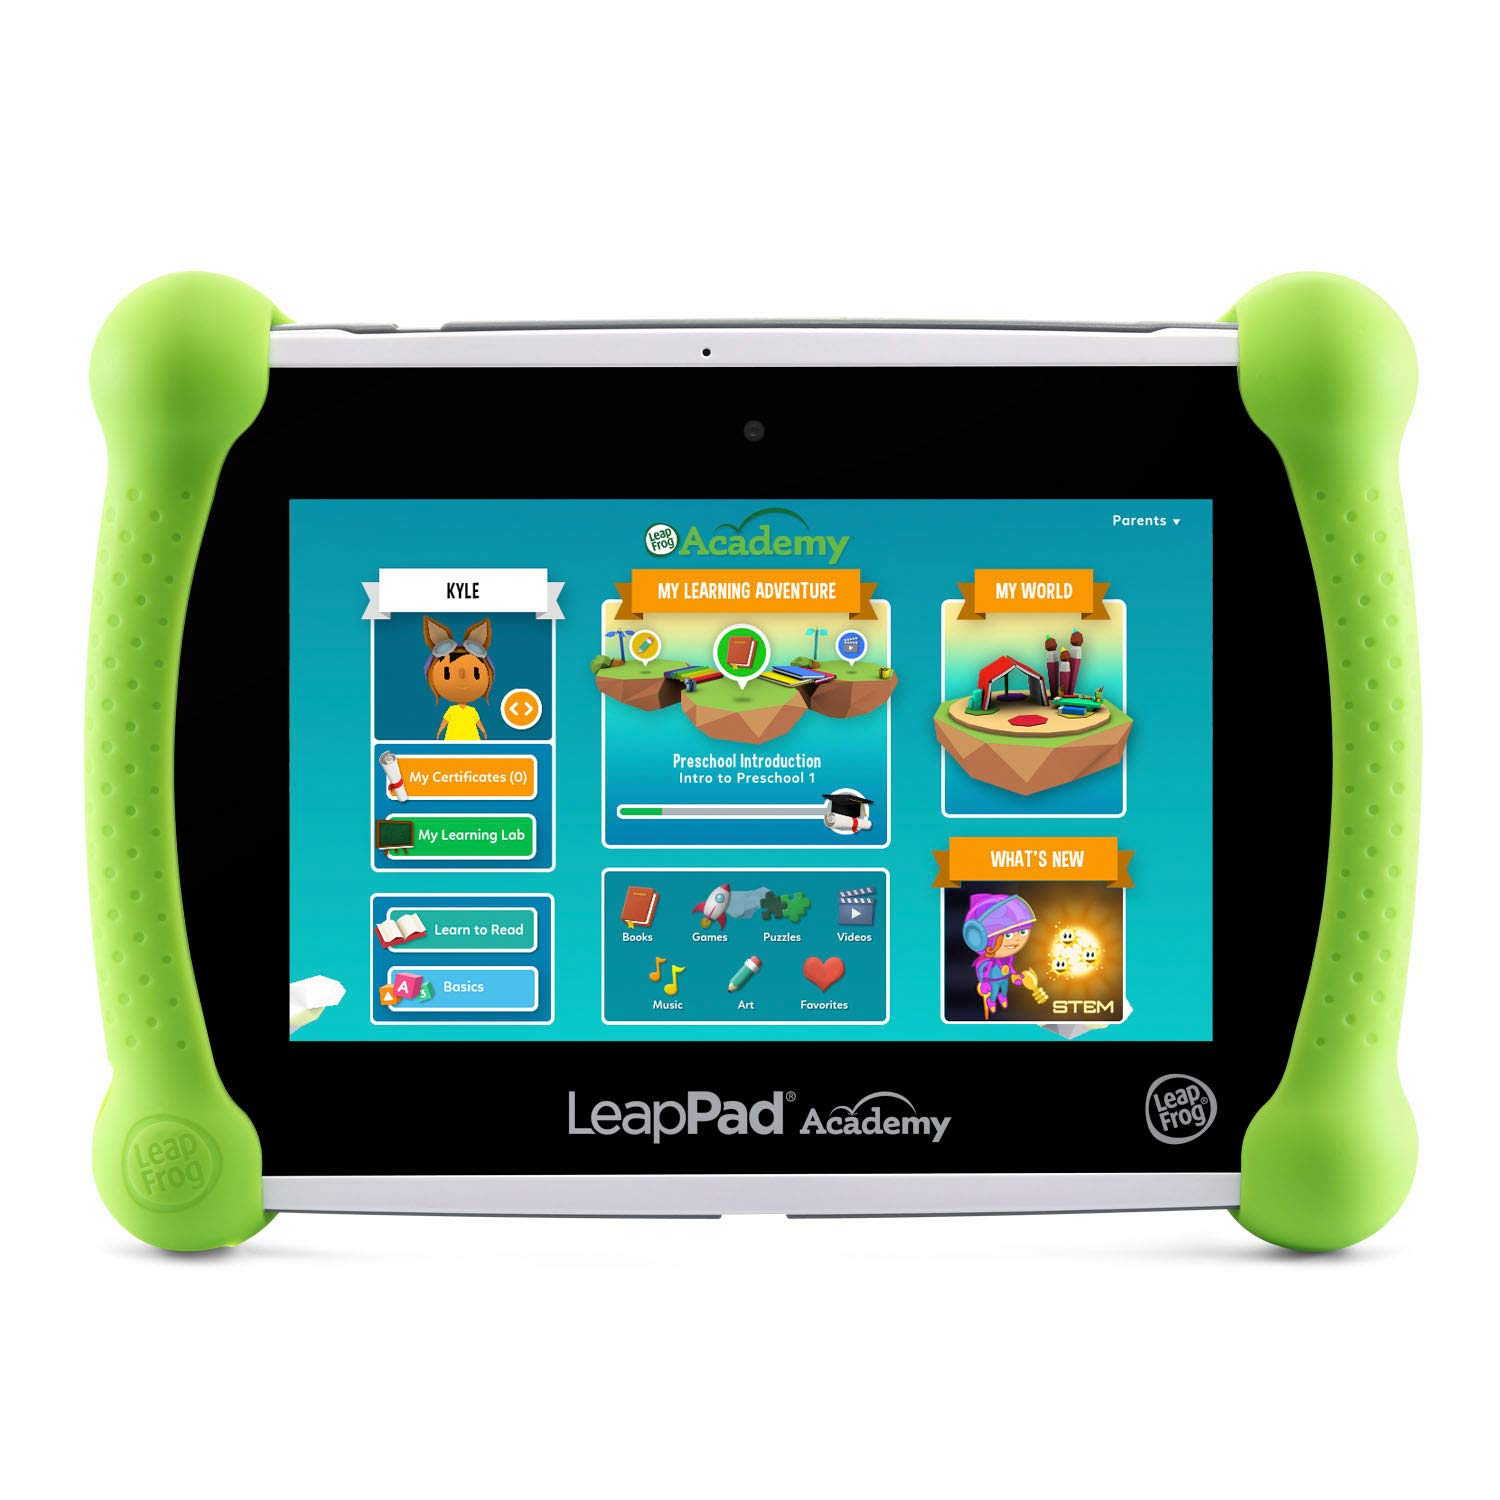 LeapFrog LeapPad Academy Kids' Learning Tablet, Green by LeapFrog (Image #2)